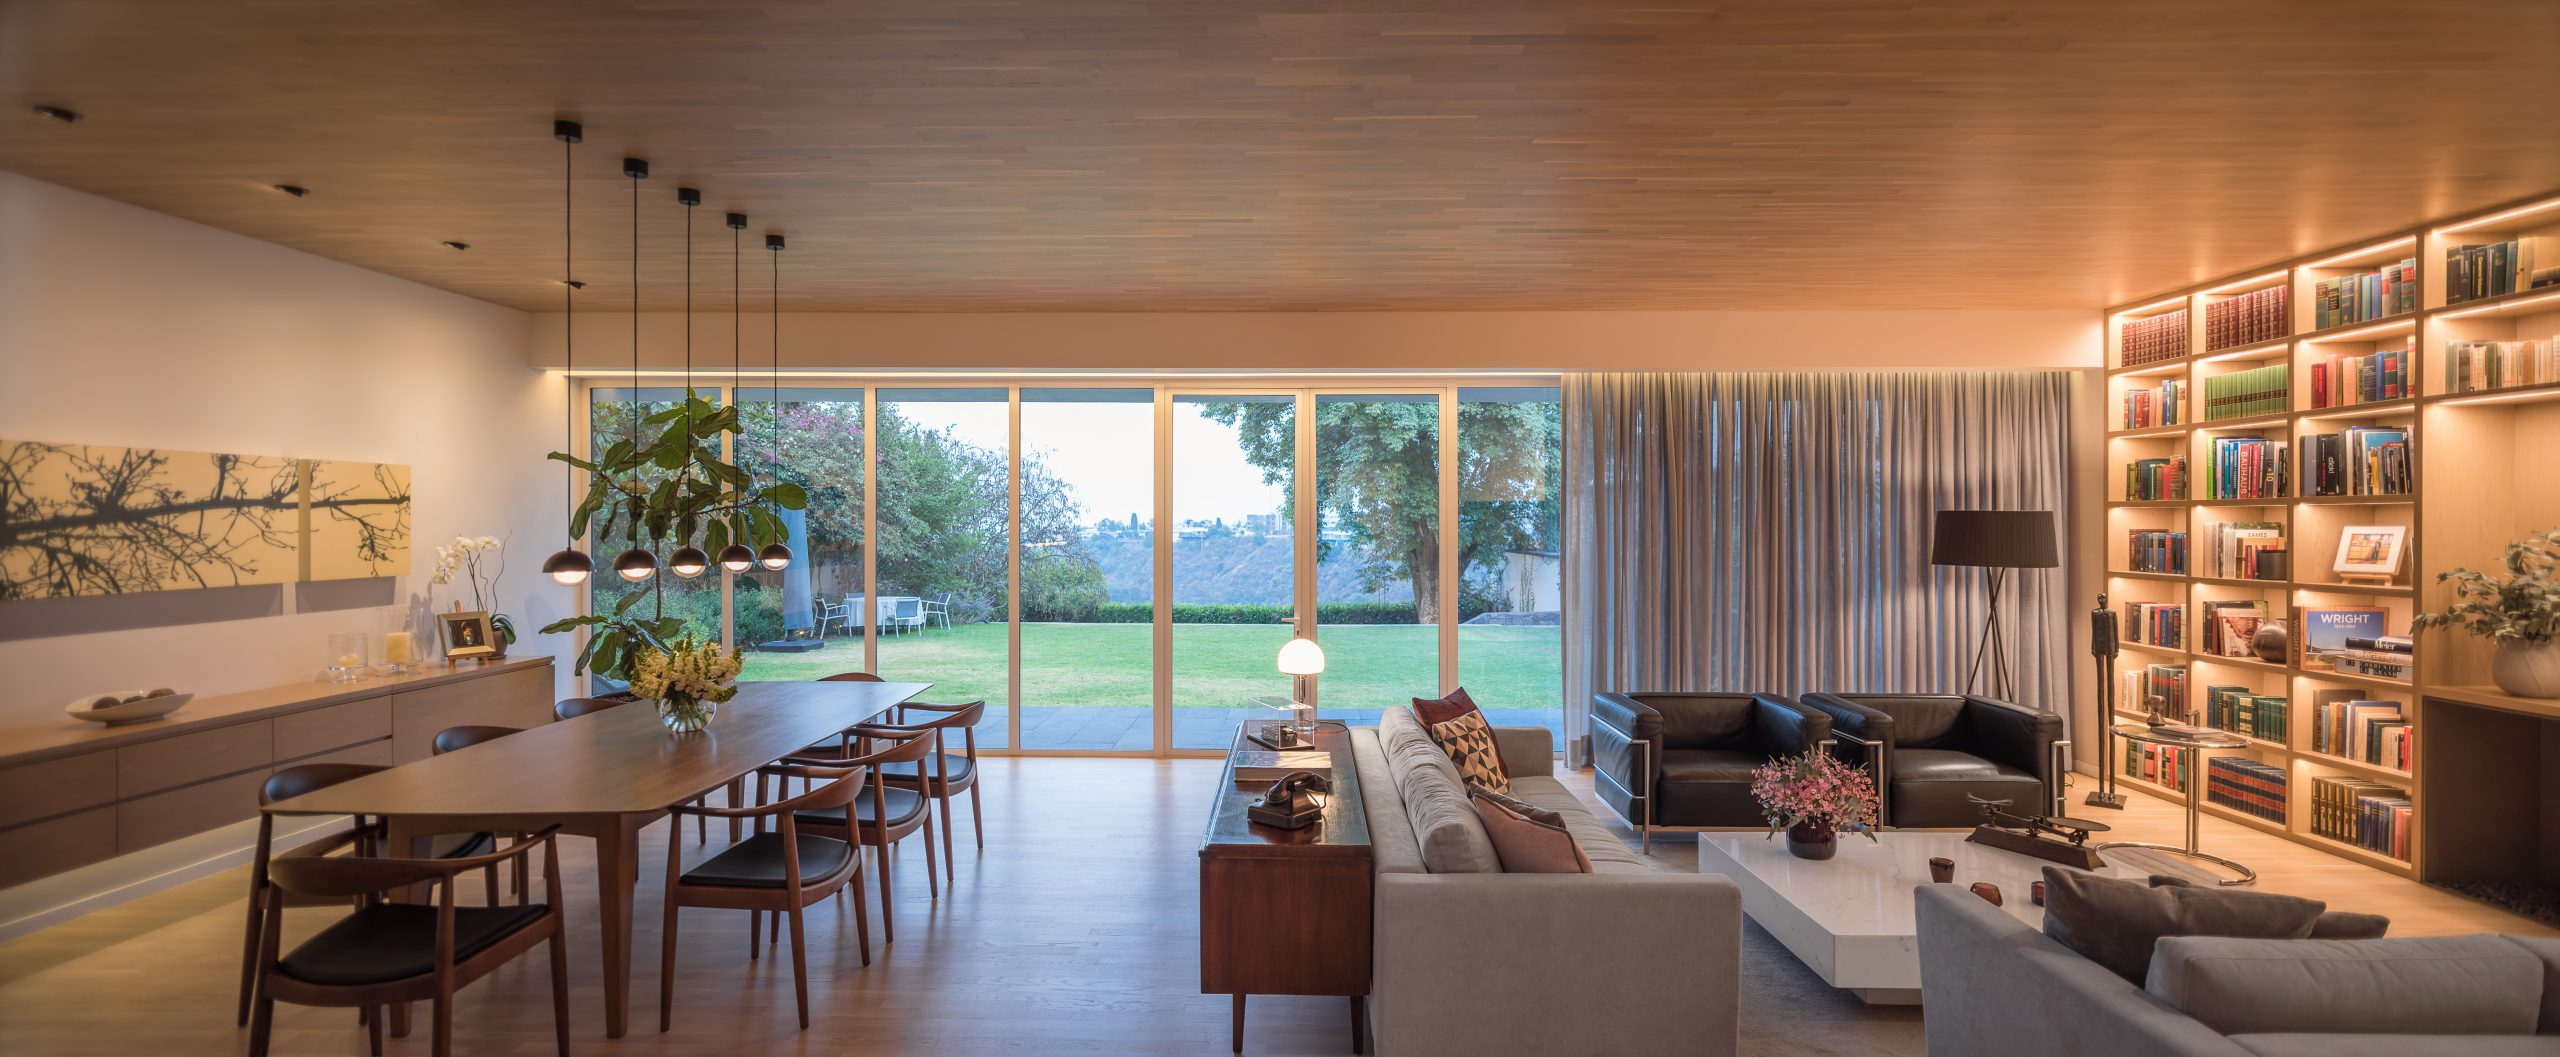 H House By Weber Arquitectos The Tree Mag